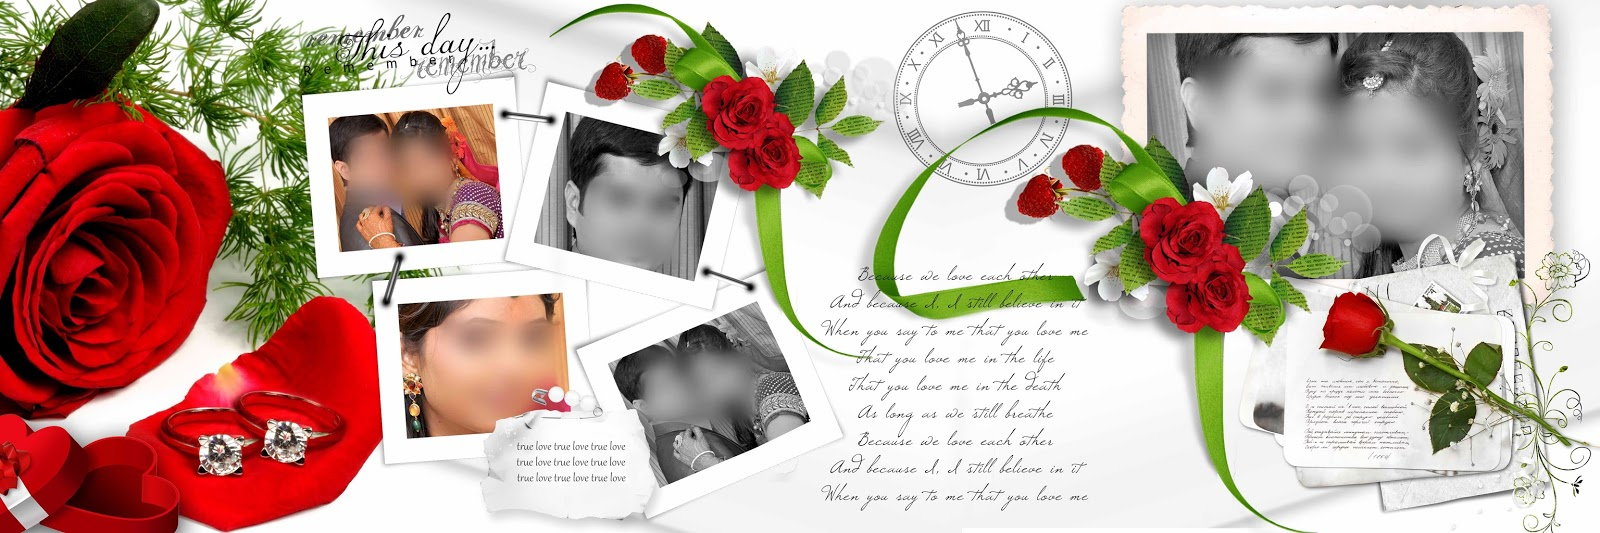 Wedding 2bal 2bdesign 2bpsd 2bfiles 2bfree 2b 2b04